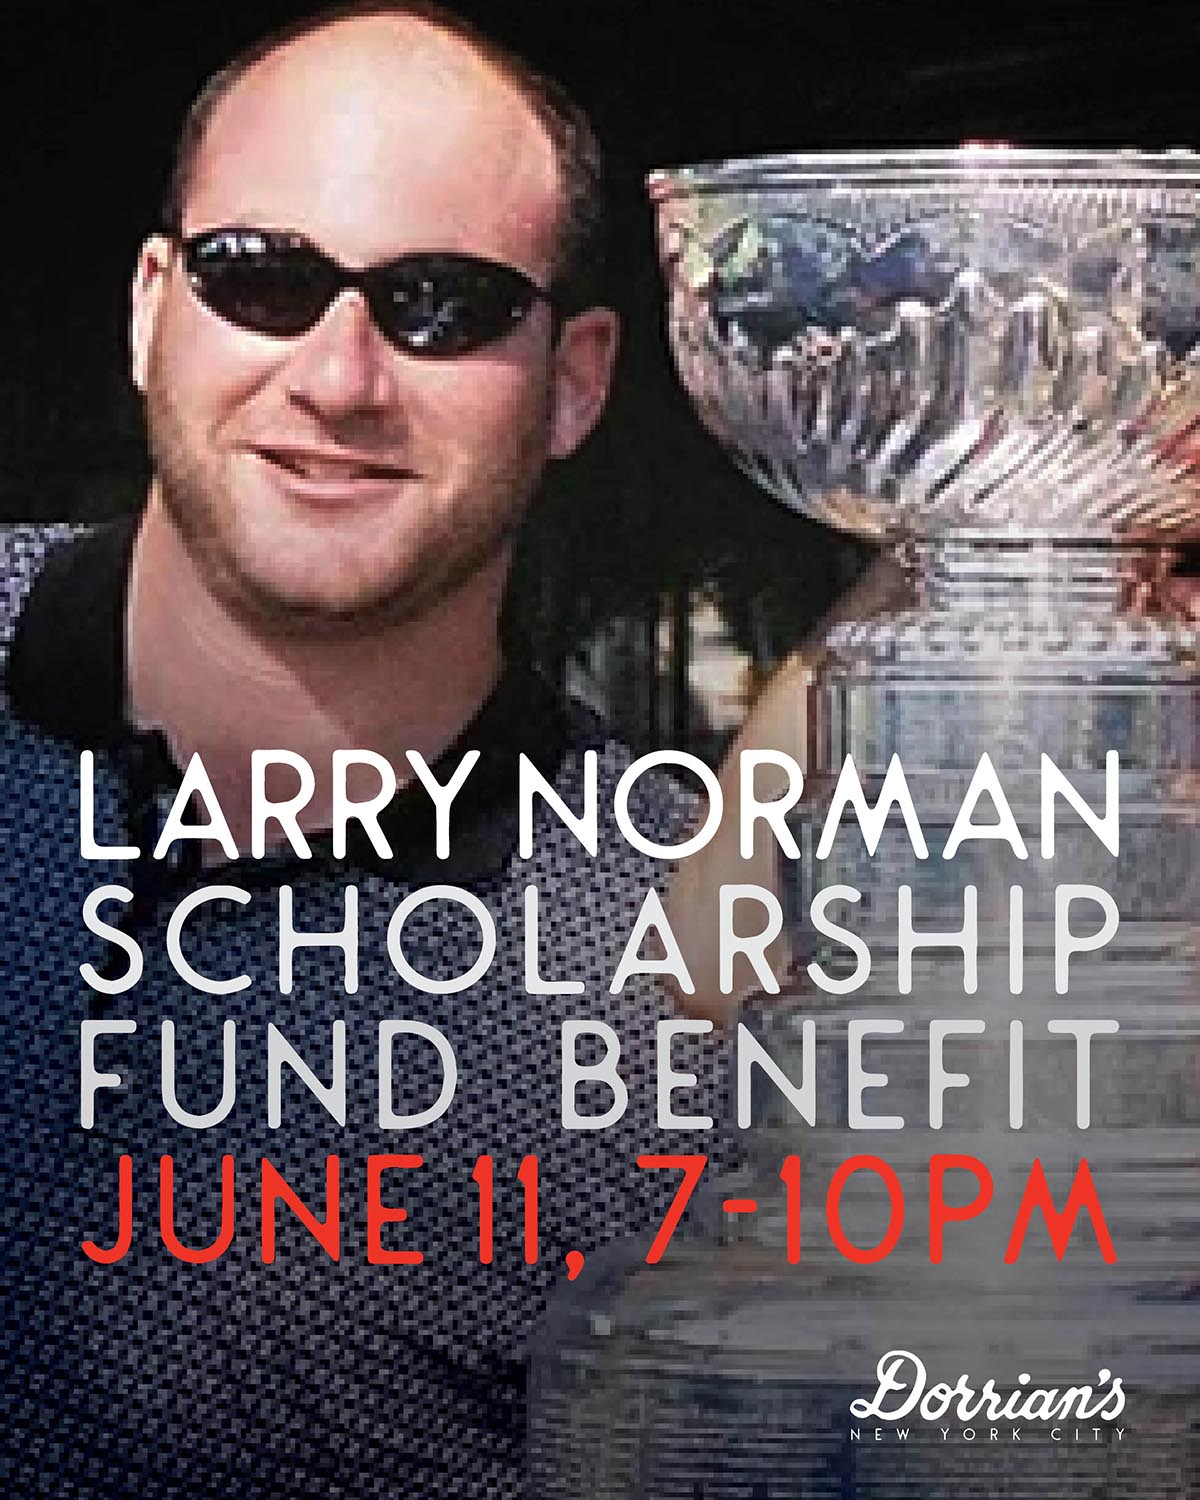 drh_nyc-2019-insta-events-special-larry-norman-scholrship-fund-benefit-1500.jpg